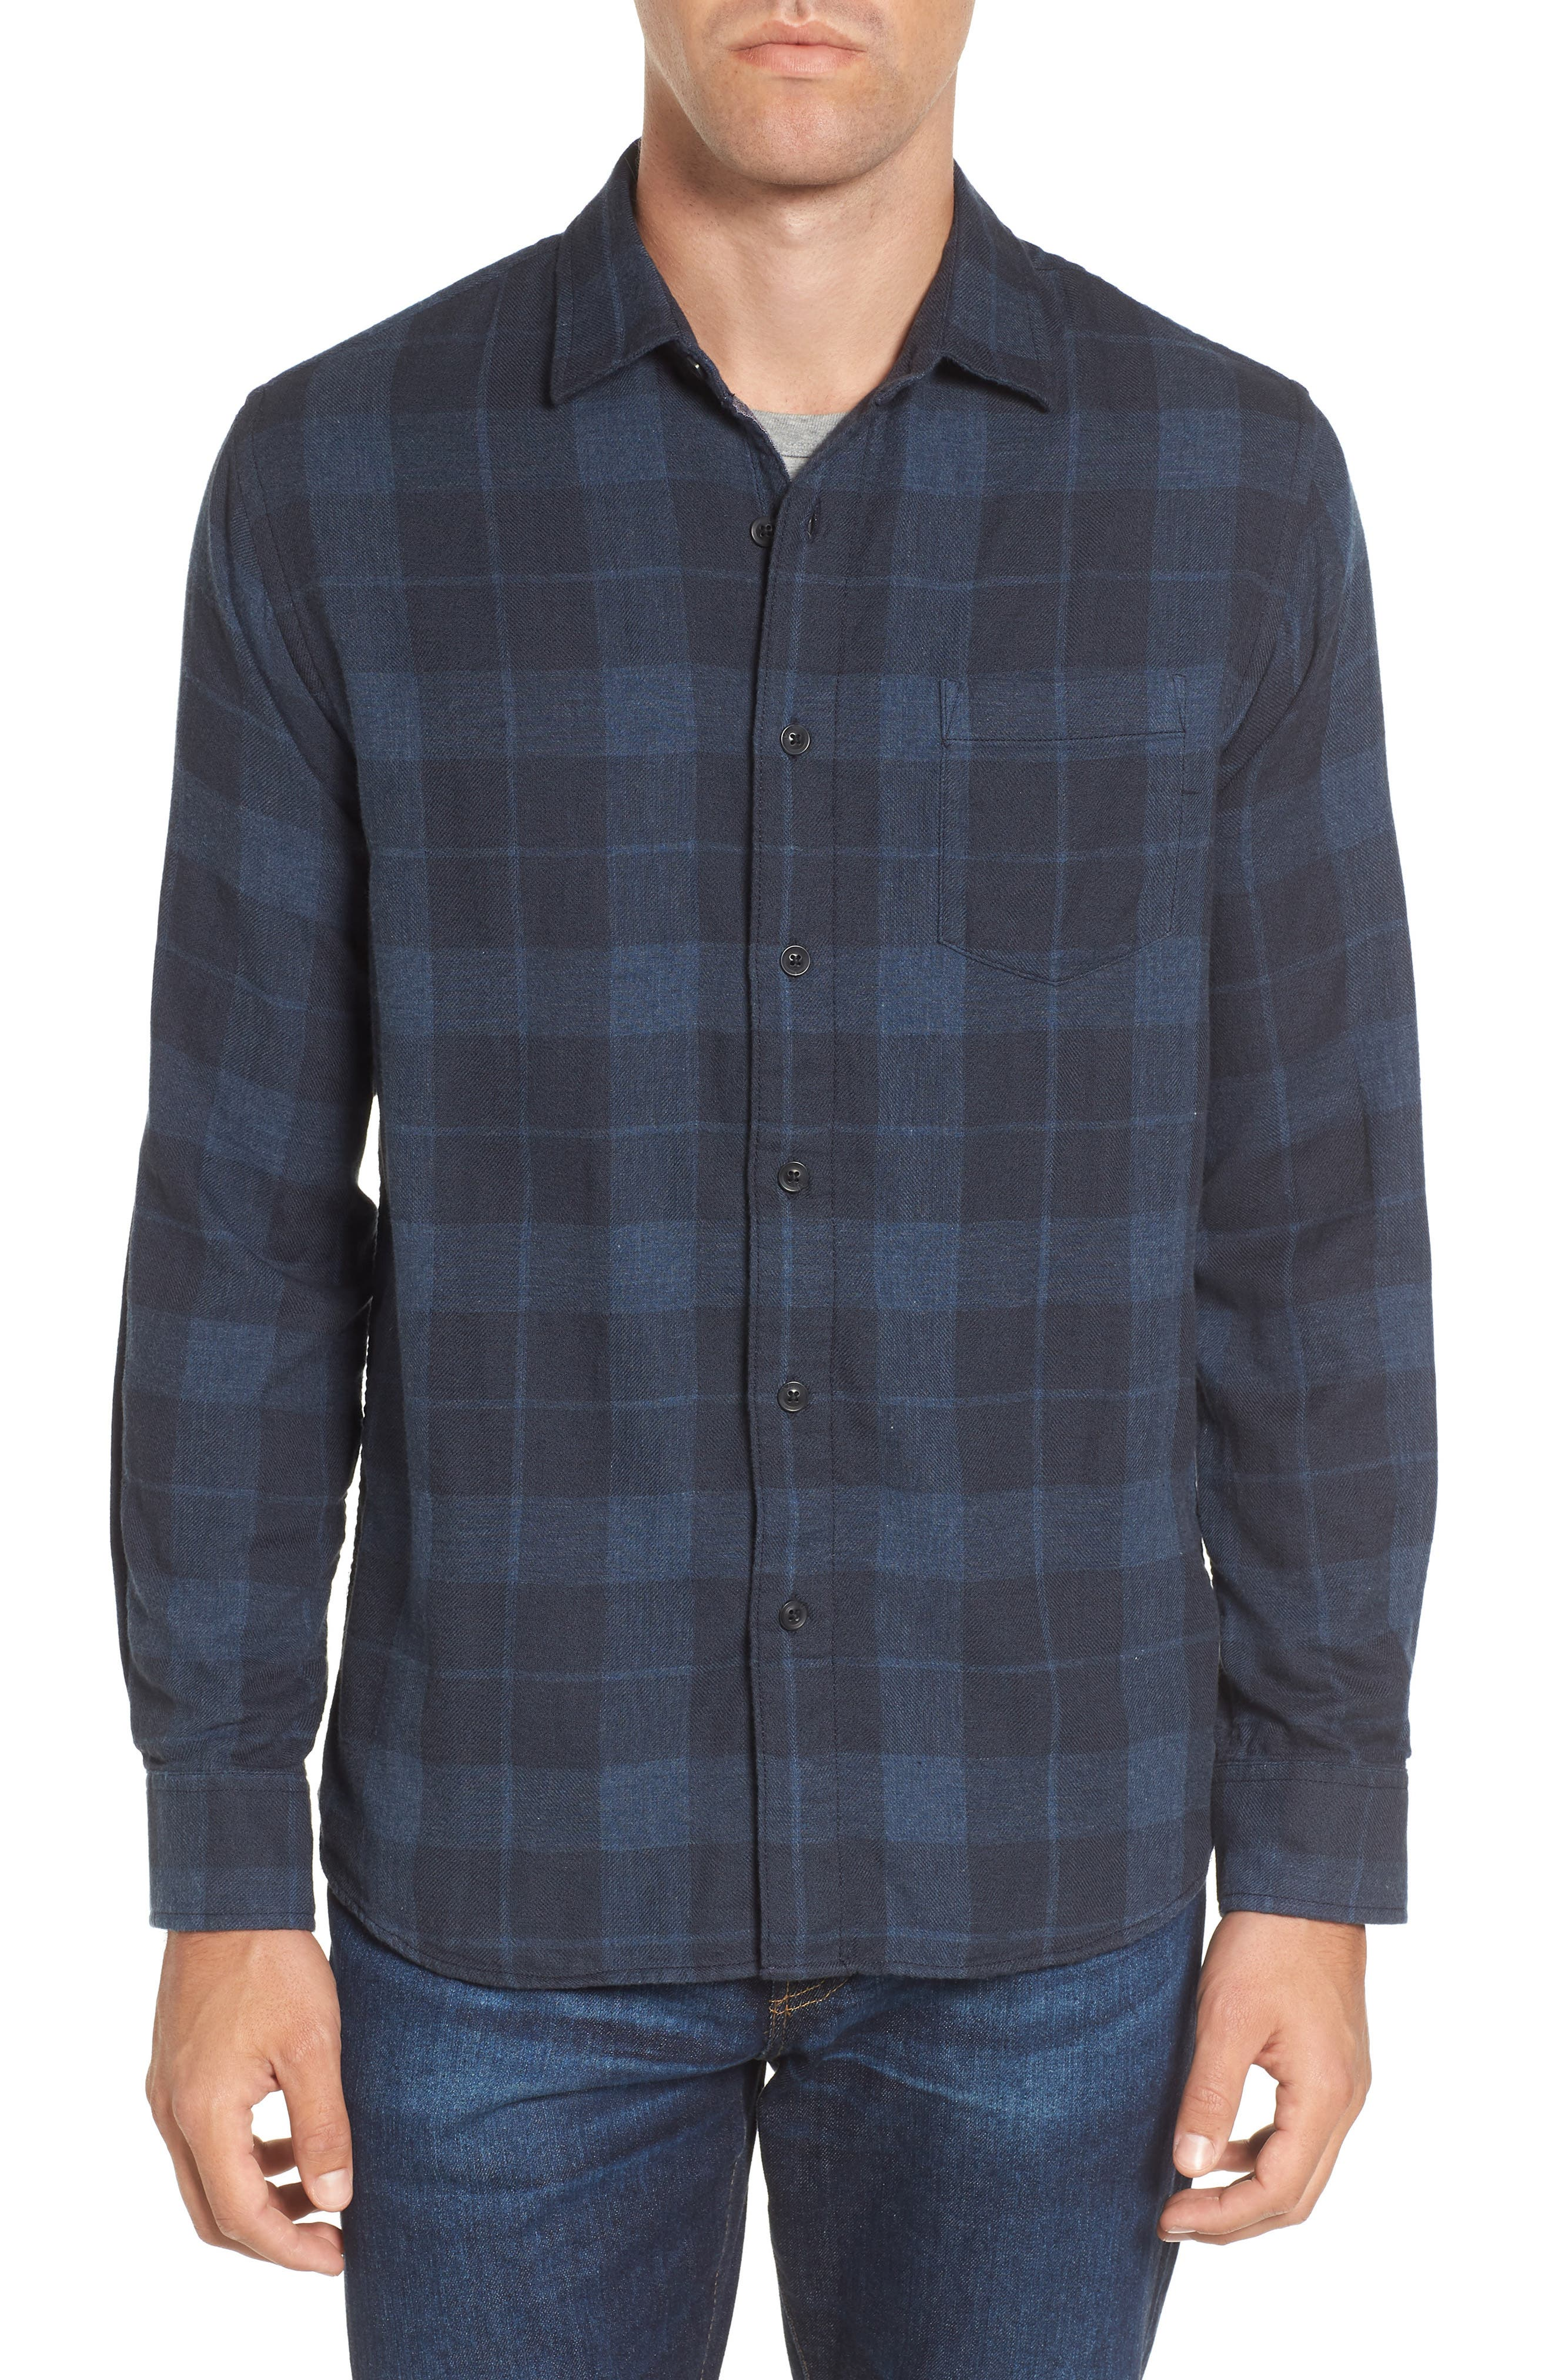 Helsby Double Cloth Plaid Sport Shirt,                             Main thumbnail 1, color,                             Charcoal Navy Heather